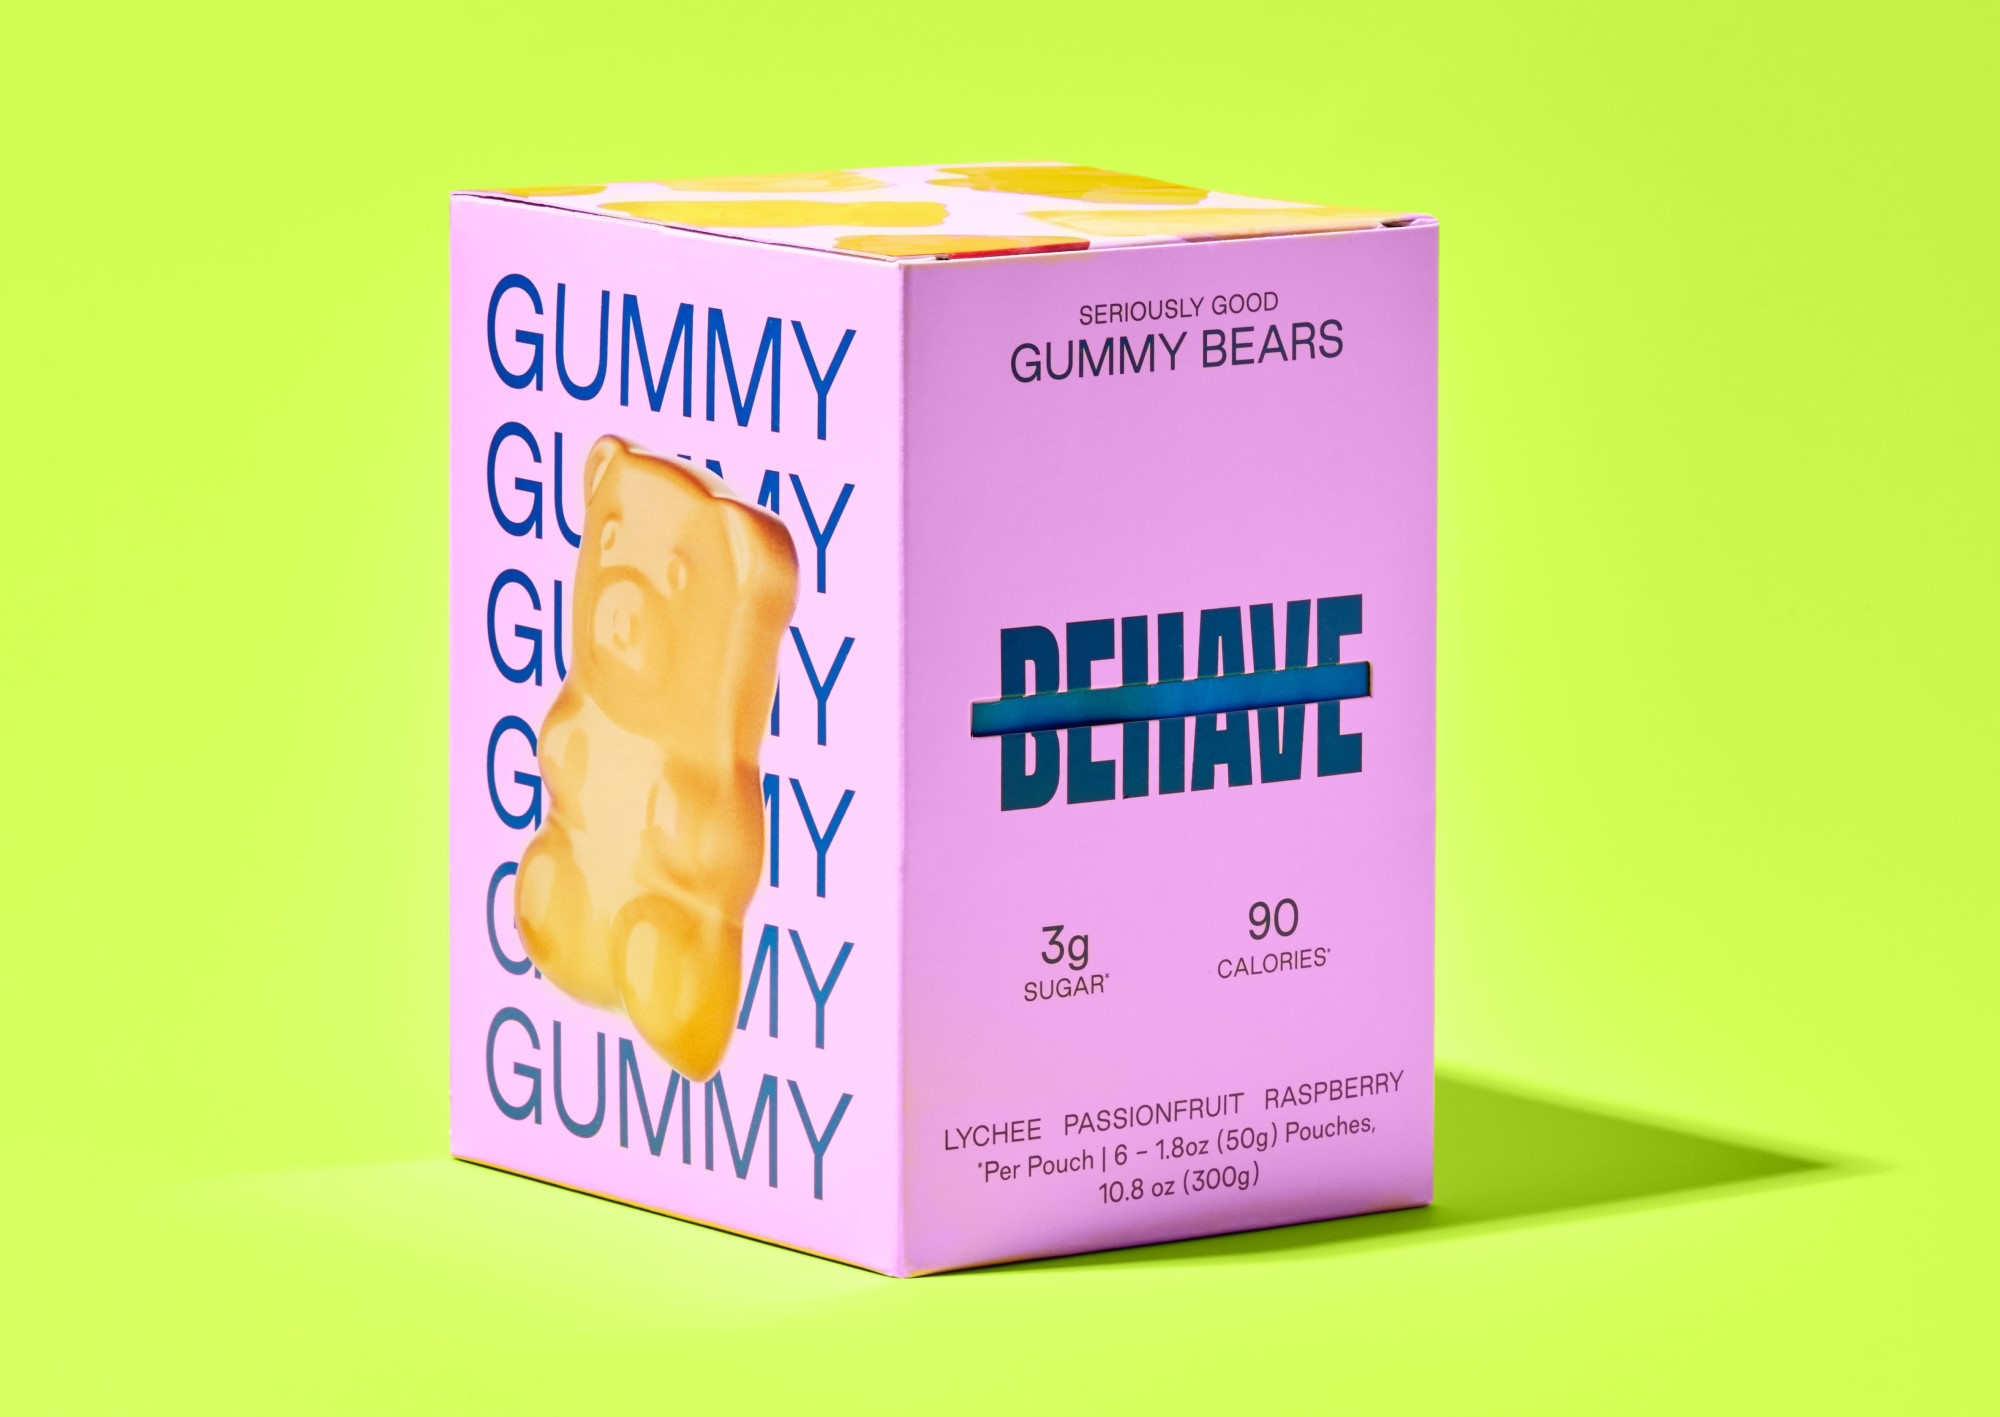 Candy brand Behave launches with low-sugar gummy bears 13